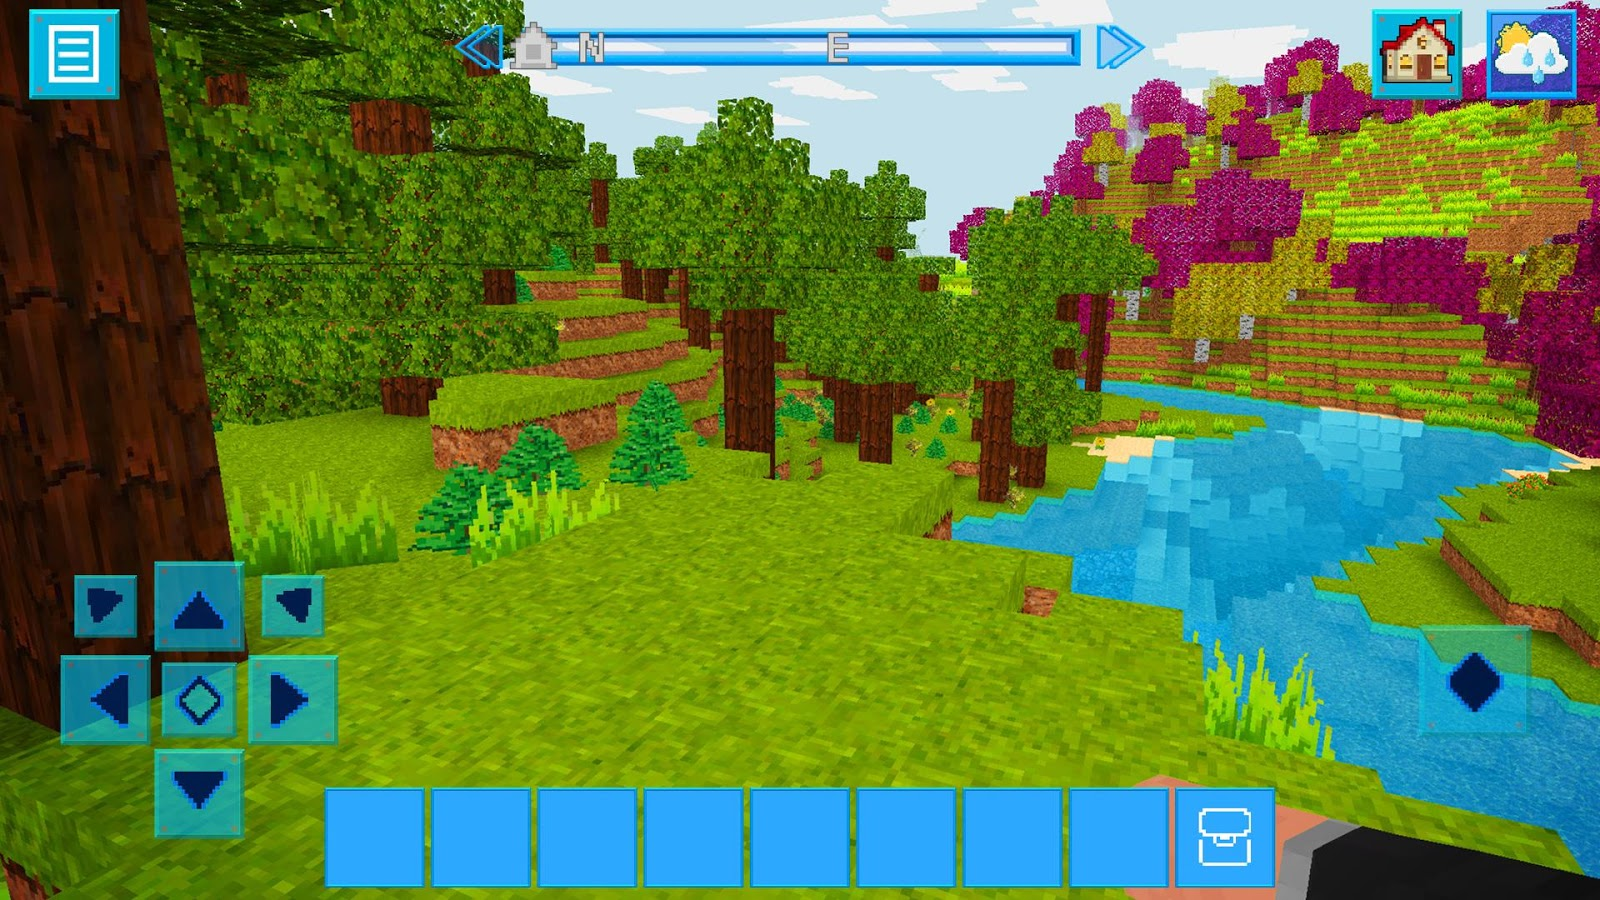 Adventurecraft survive craft android apps on google play for Good craft 2 play store